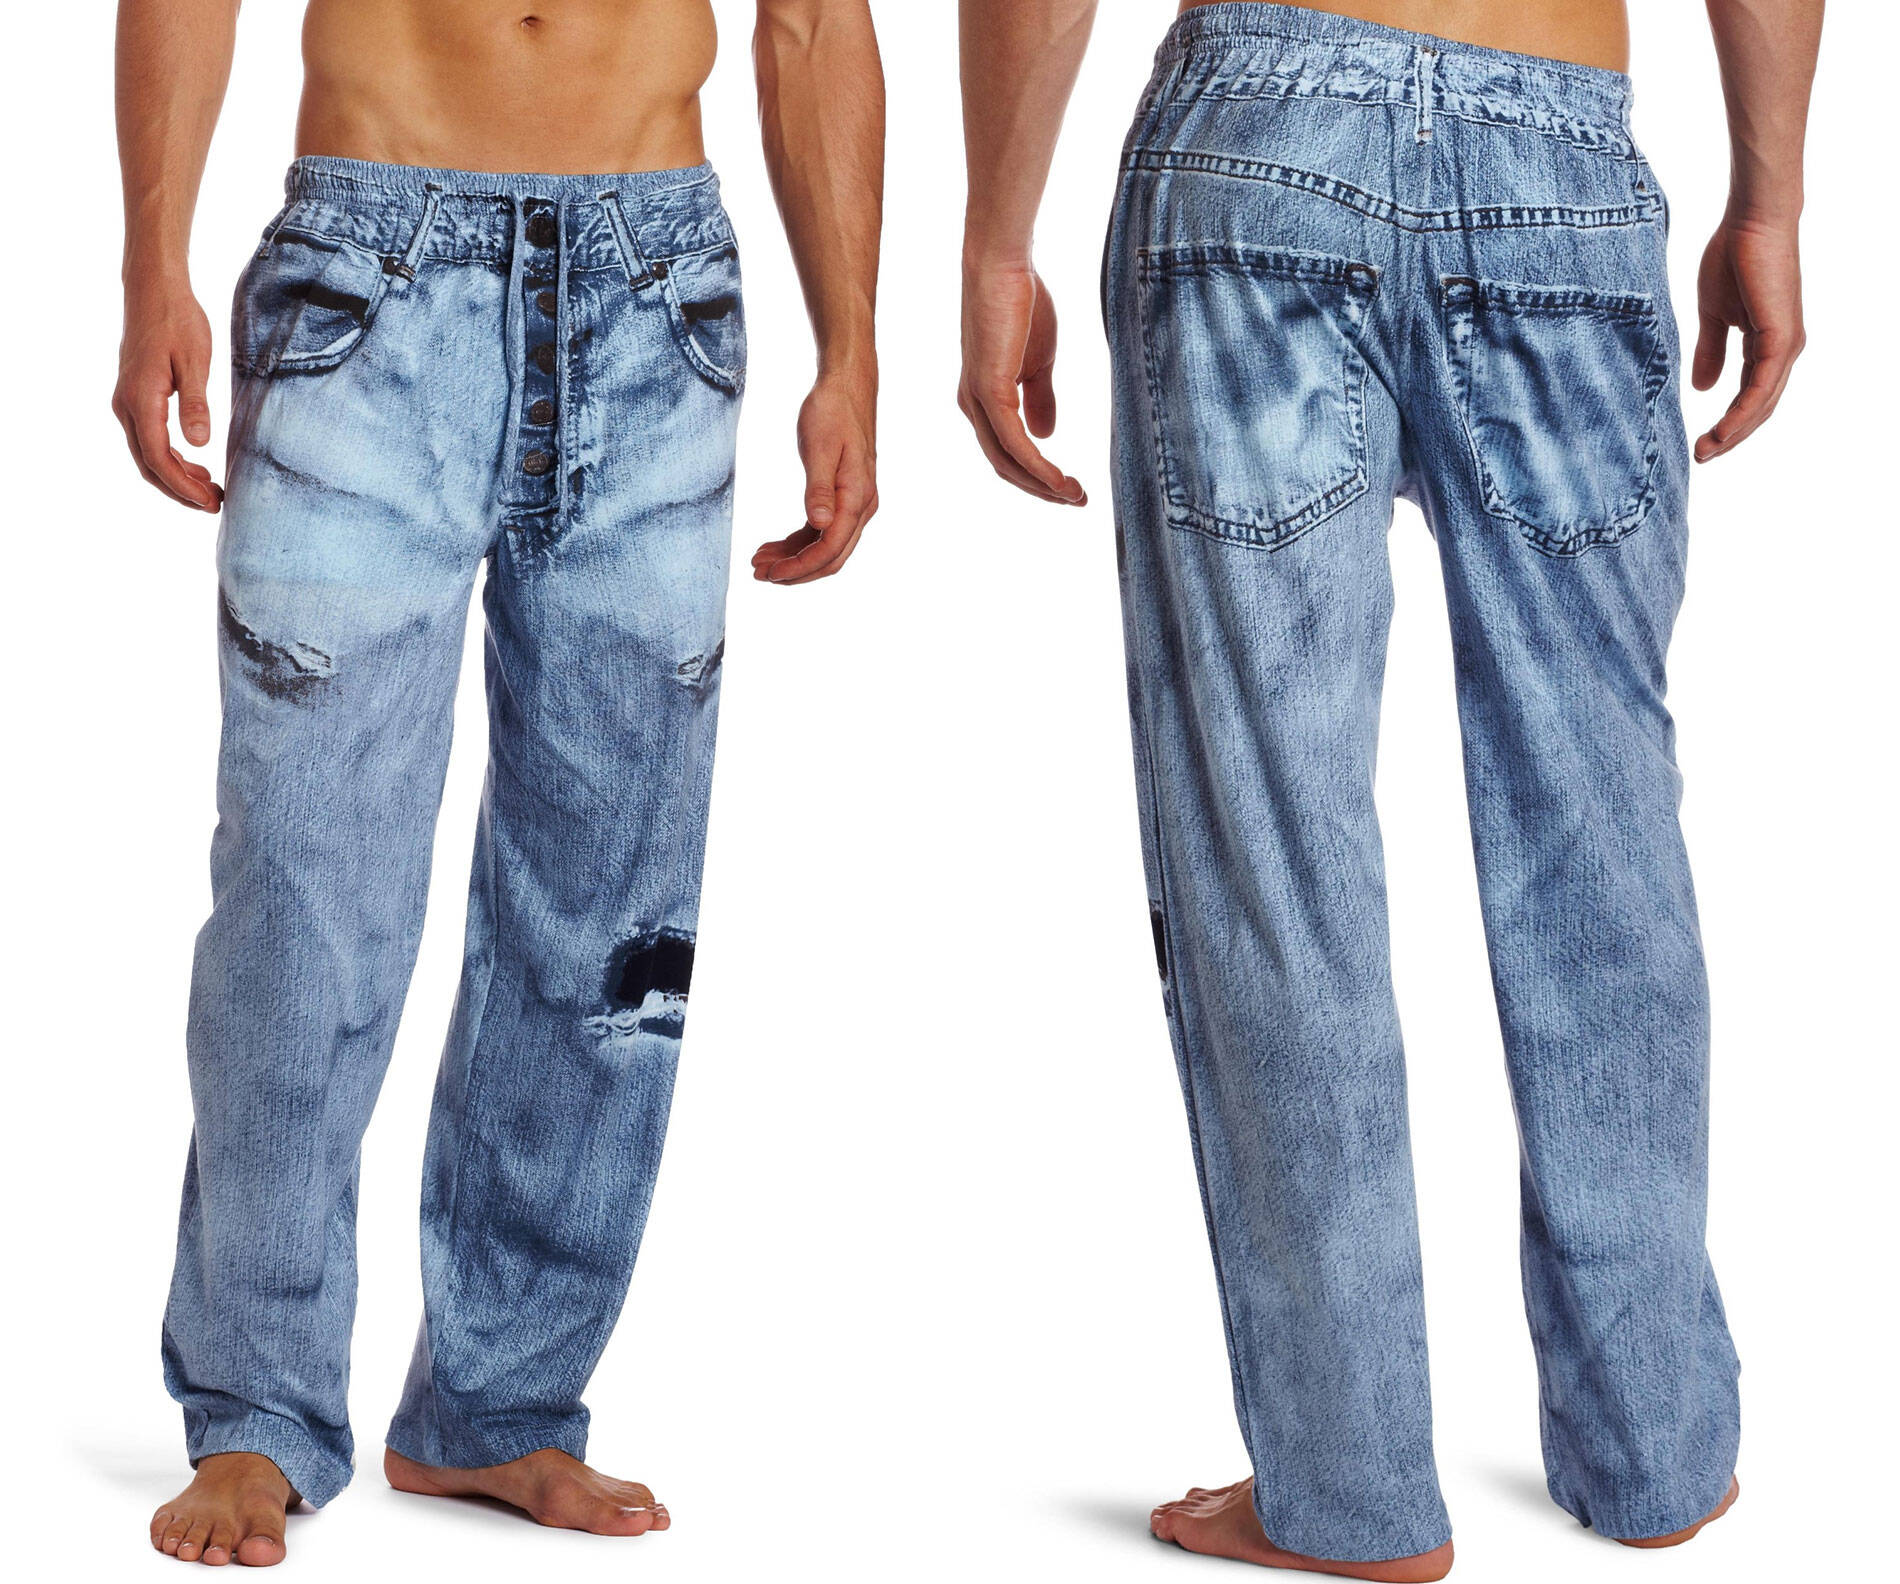 Men's Faux Denim Pajama Pants - http://coolthings.us